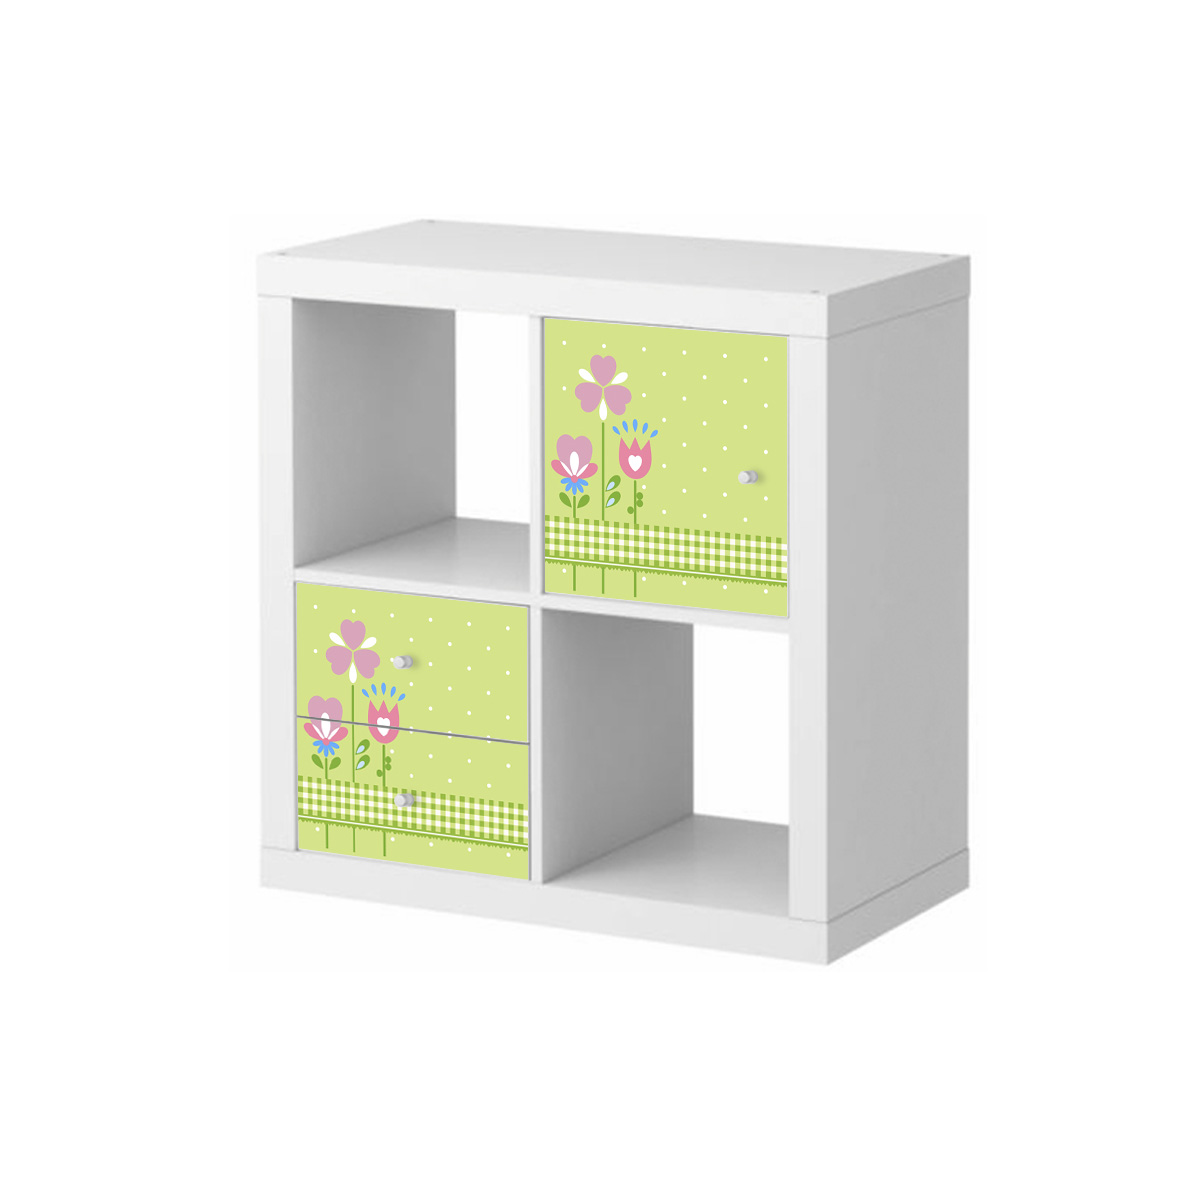 stickers meubles ikea stickers meubles ikea fleurs sur le pr vert ambiance. Black Bedroom Furniture Sets. Home Design Ideas